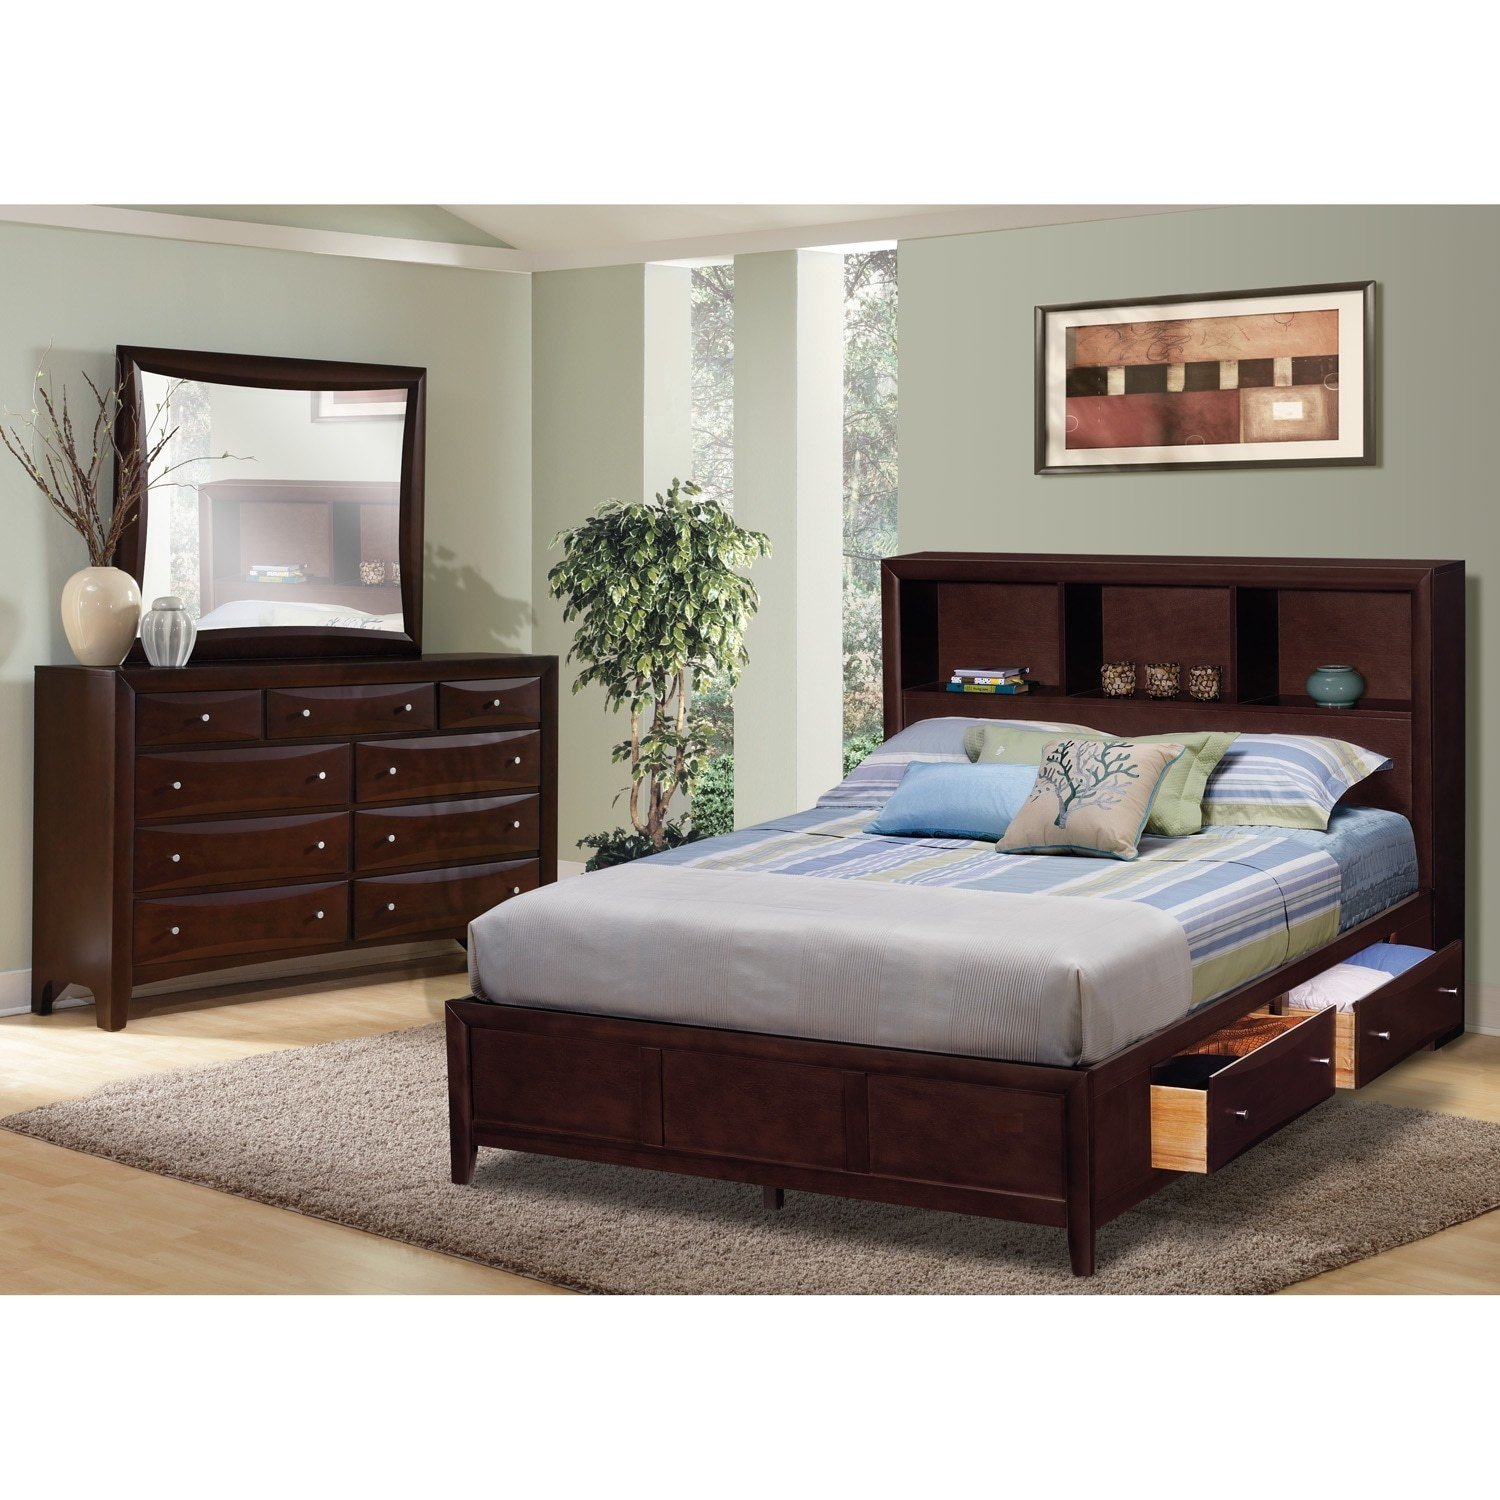 Best Clarion Bedroom 5 Pc King Wall Bedroom Value City Furniture With Pictures